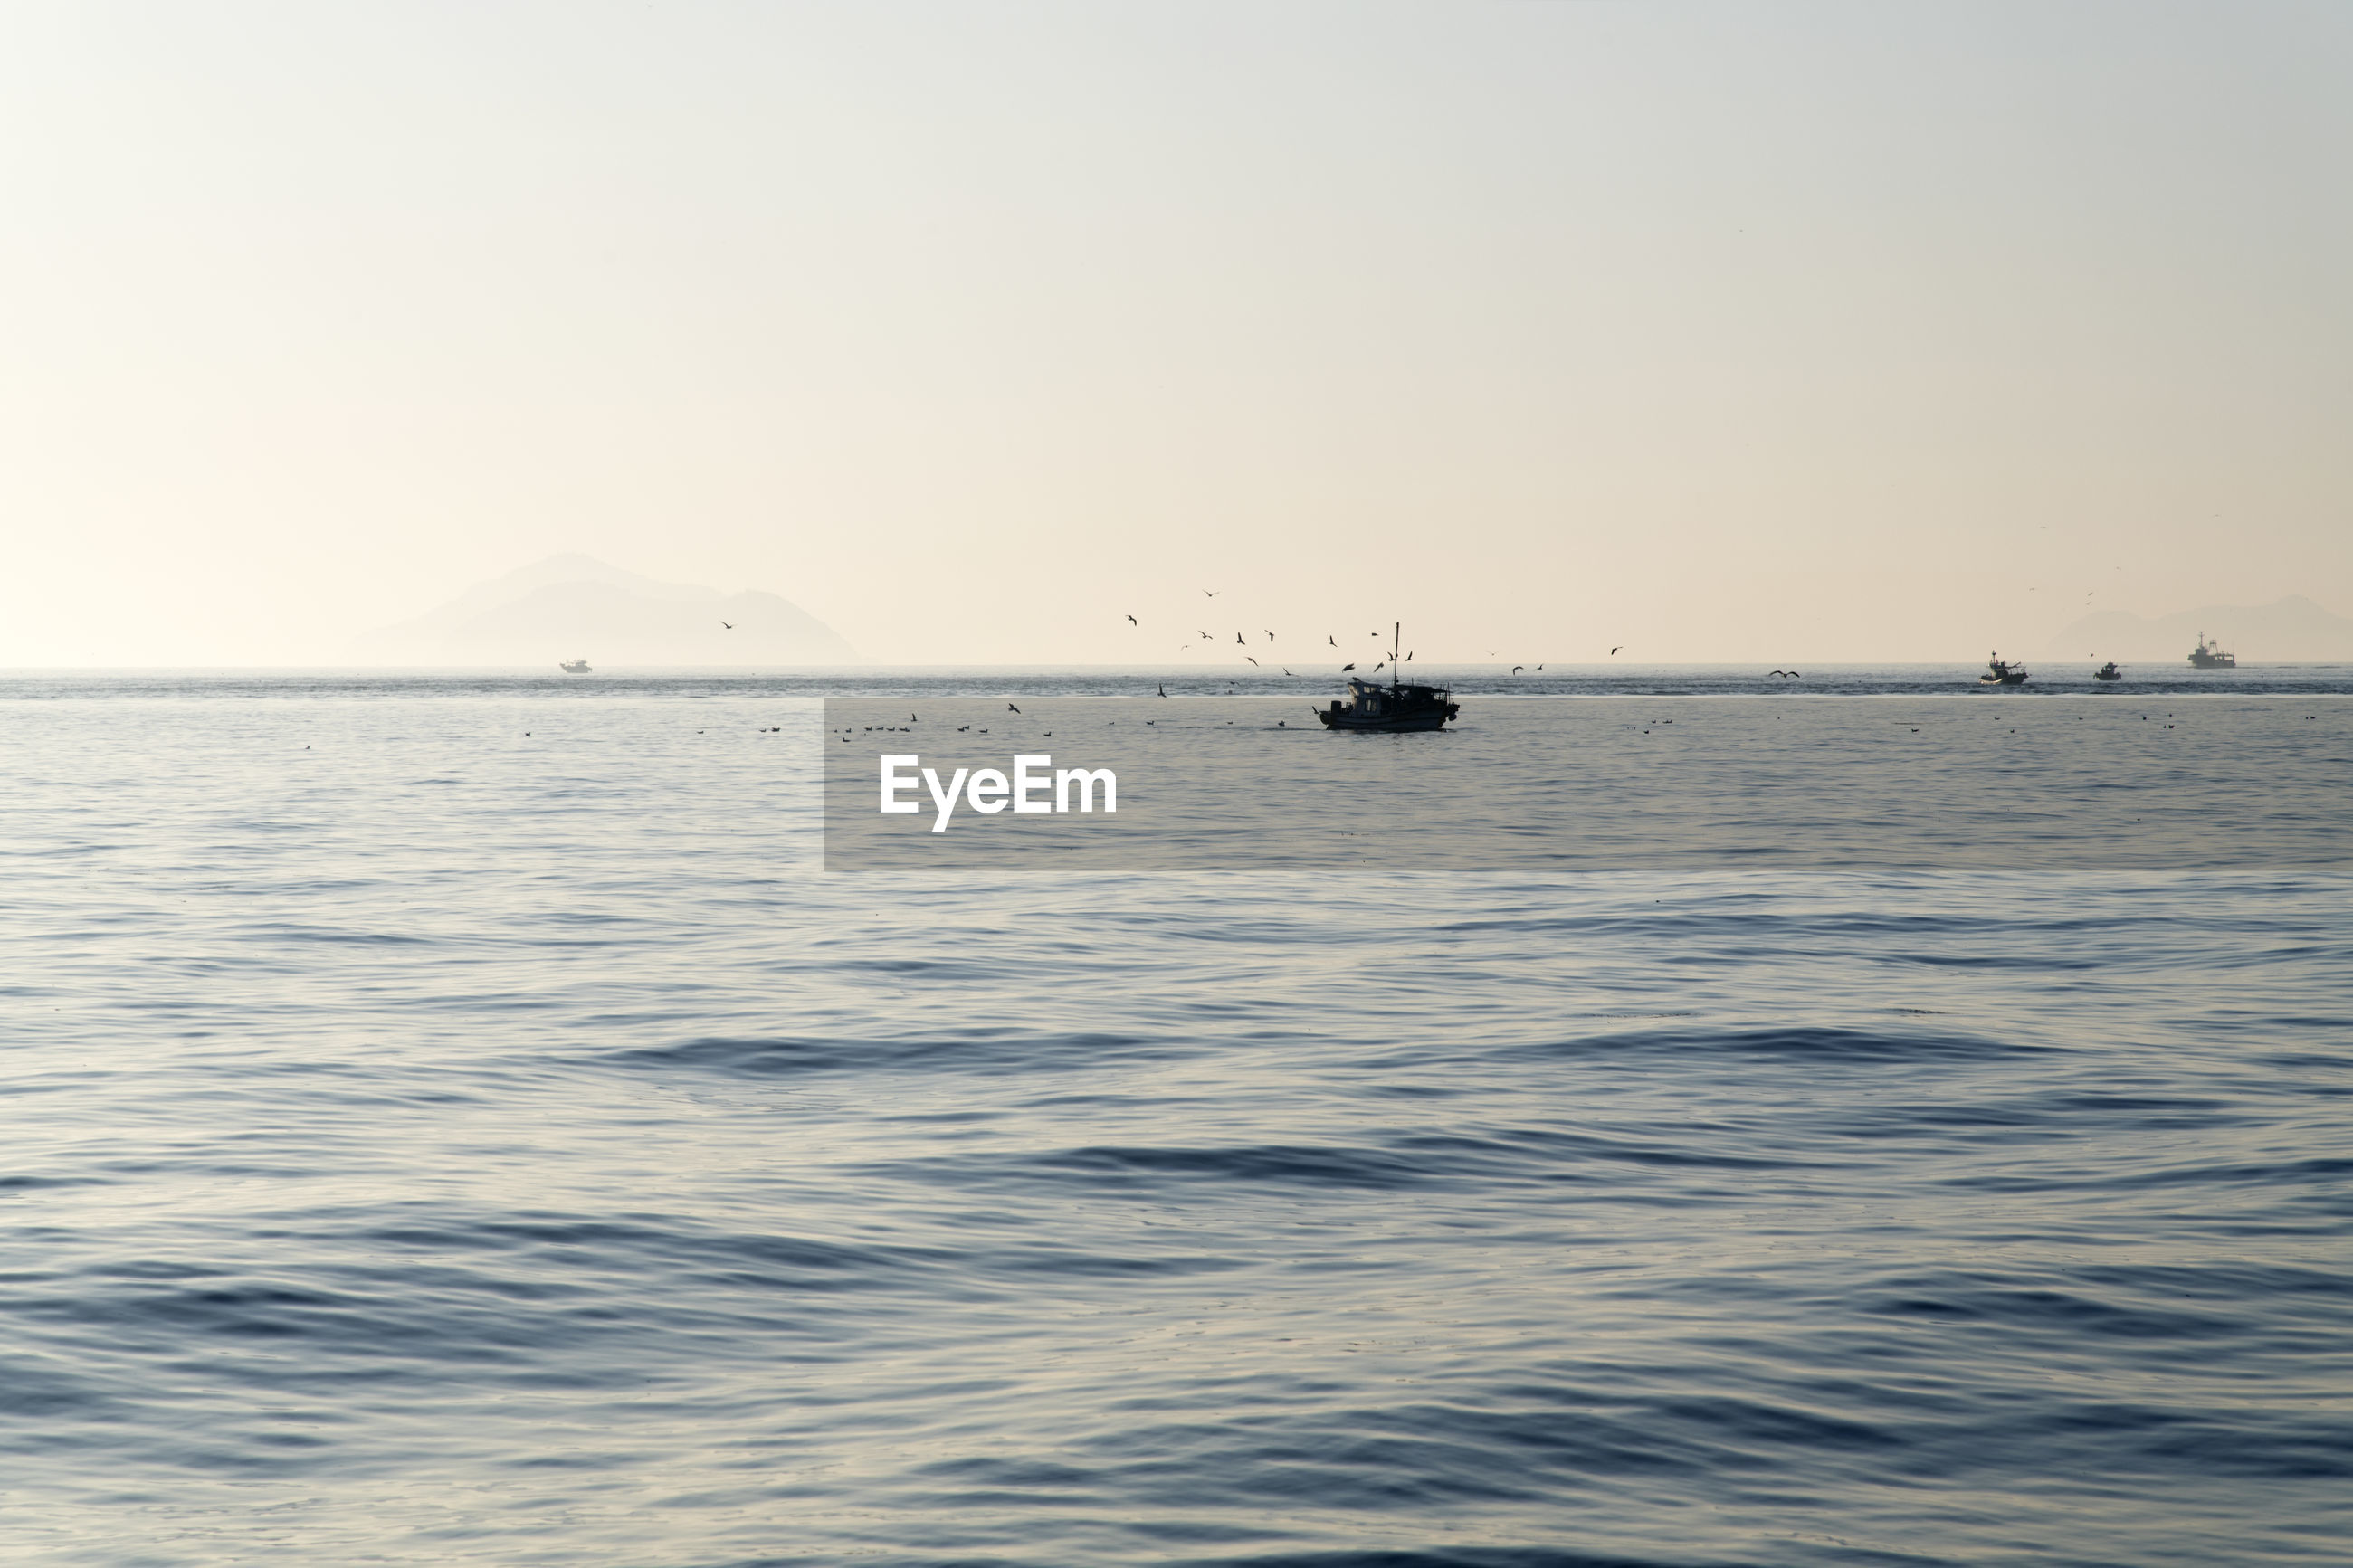 BOATS SAILING IN SEA AGAINST CLEAR SKY